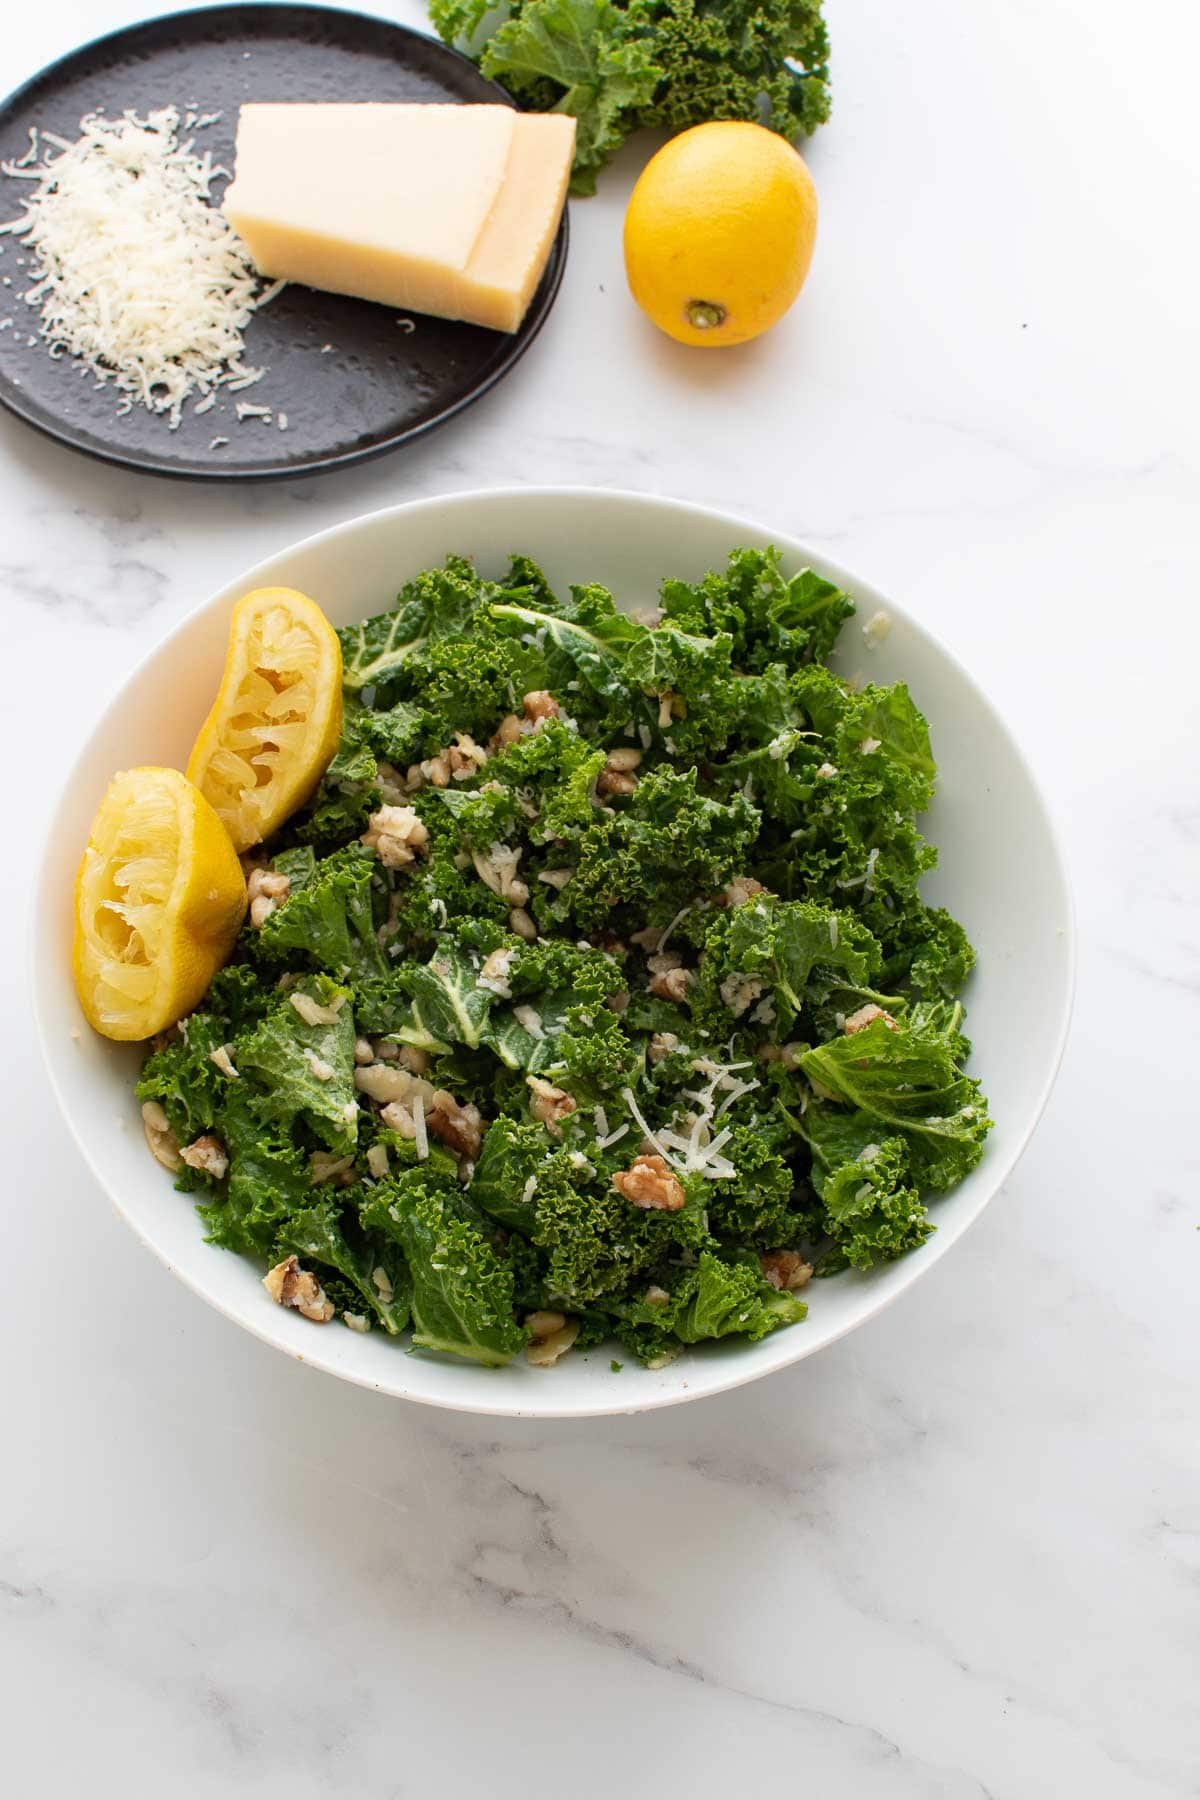 A bowl of lemon kale salad, with lemon and parmesan in the background.